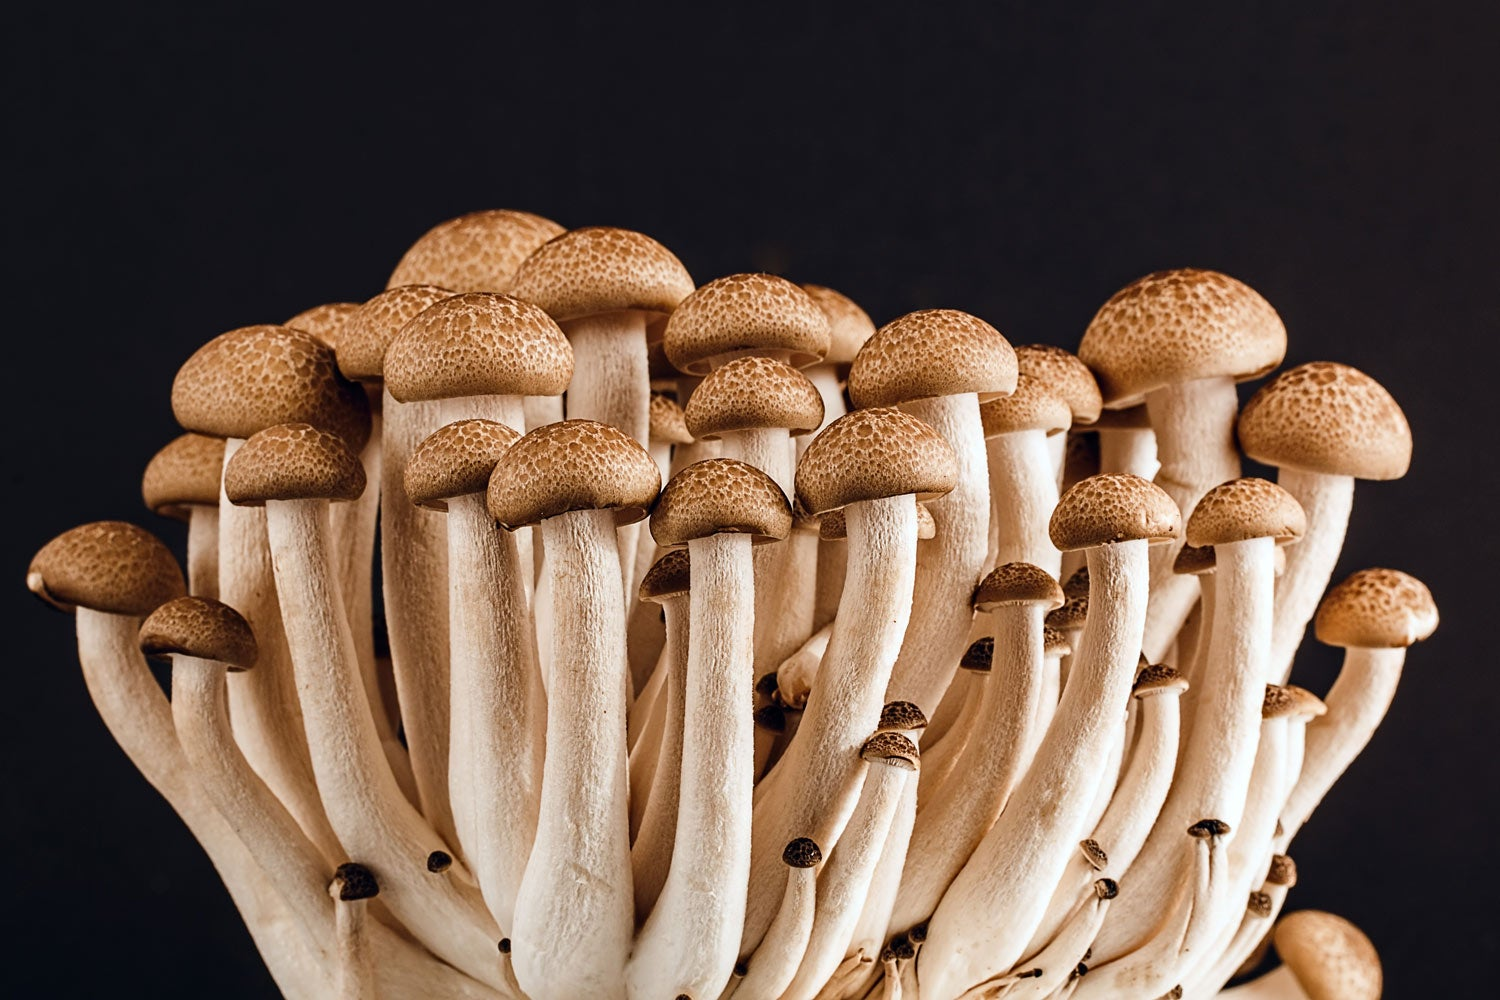 There's a deadly fungus among us—and it's spreading